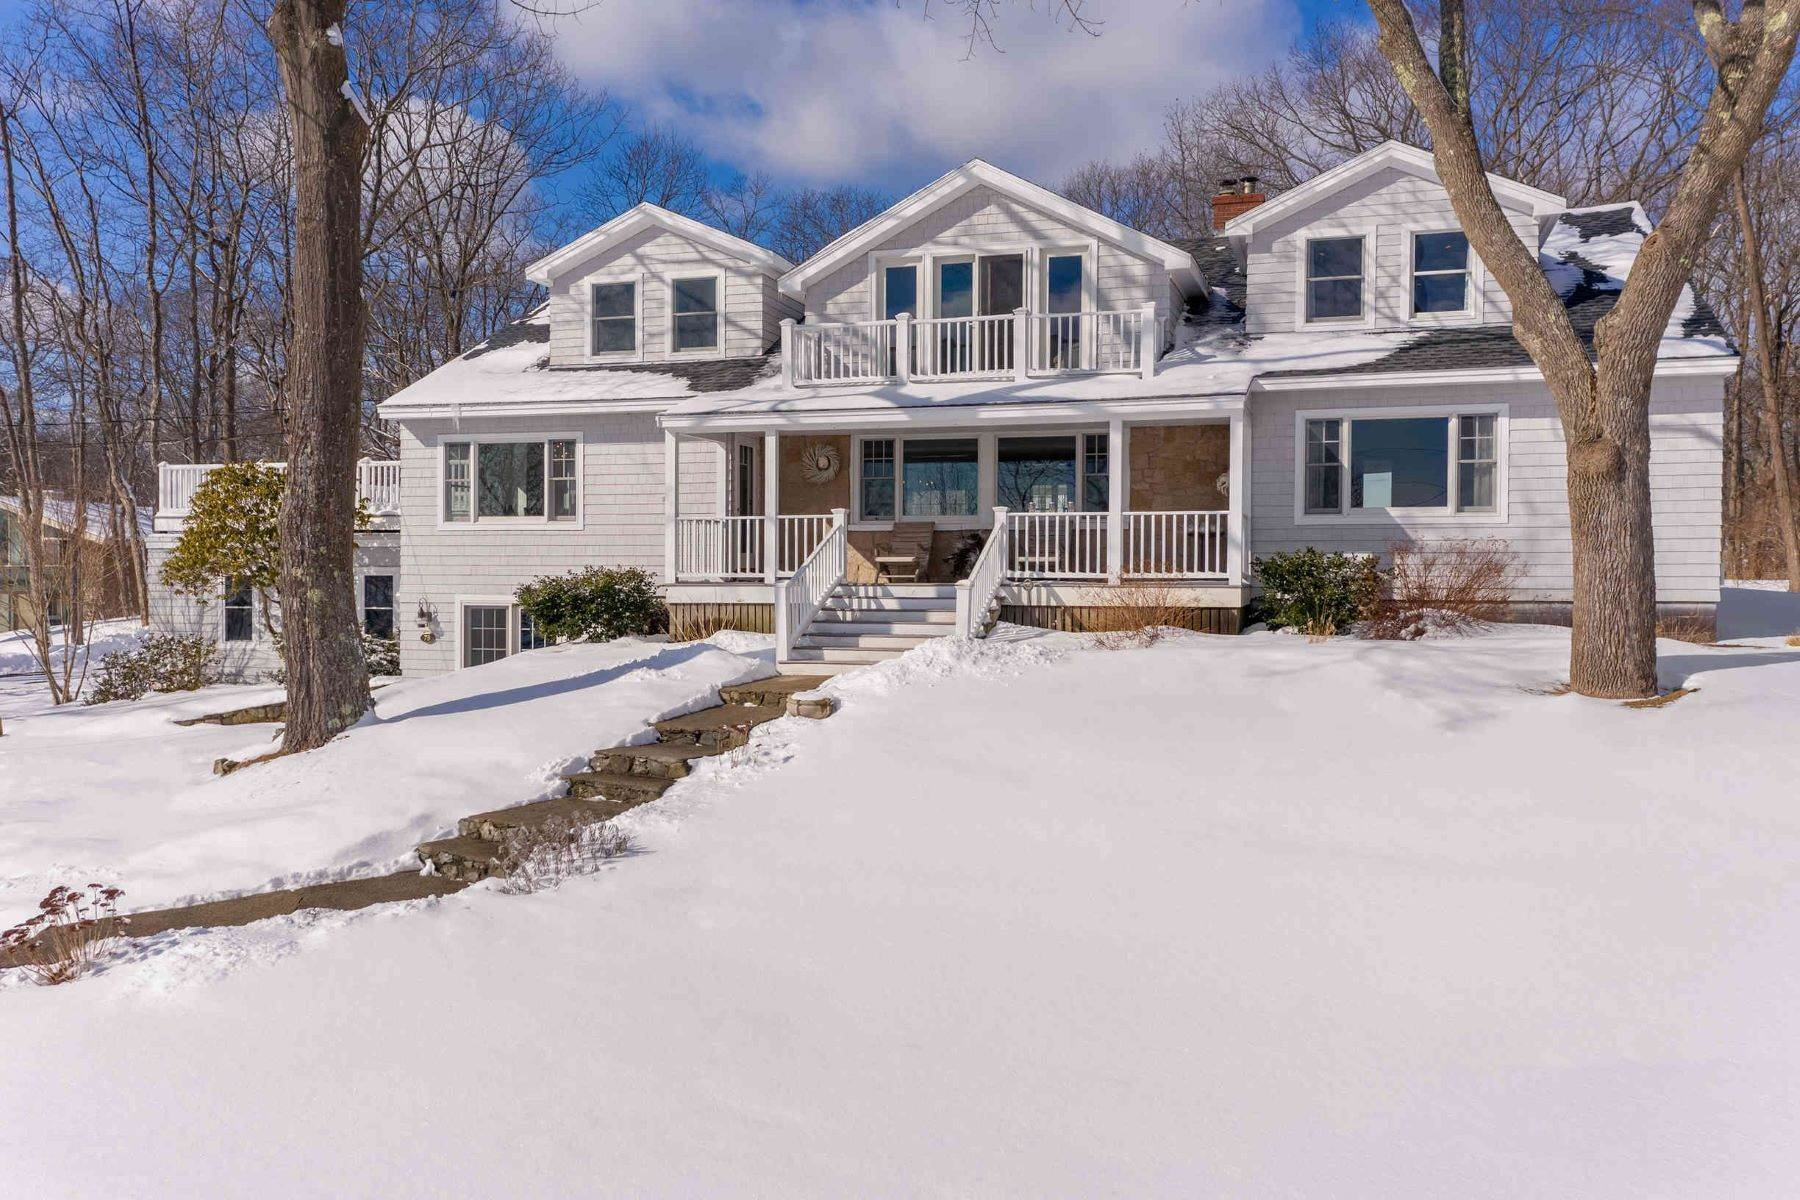 Single Family Homes for Sale at Exceptional Coastal Residence in Coveted York Harbor 78 Norwood Farms Road, York, ME 03909